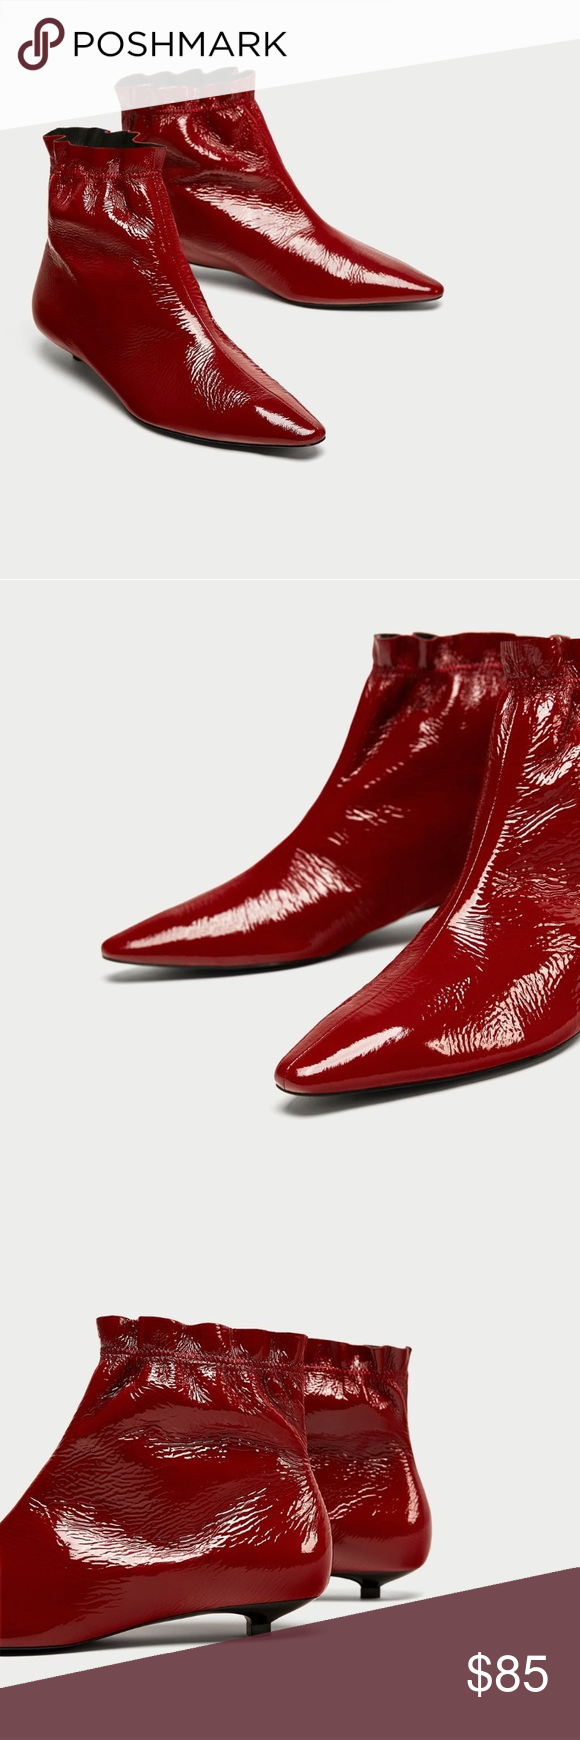 89e87612b99 ZARA Flat Patent Leather Ankle Boots Burgundy leather ankle boots with  wrinkled patent finish leather, gathering at the top of the leg and pointed  toes Heel ...